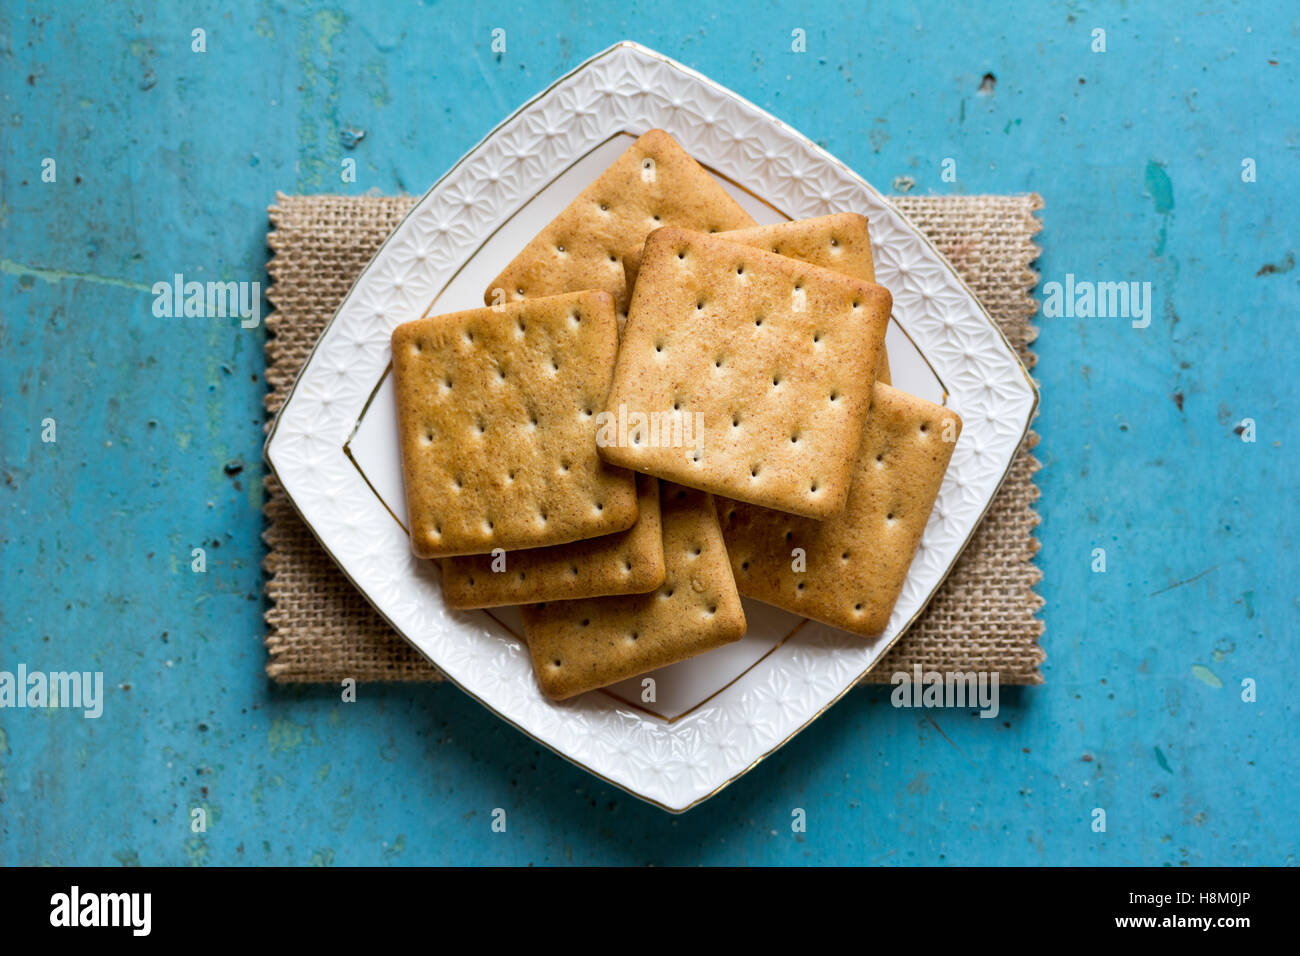 Cracker biscuits in a white ceramic square saucer on linen napkin on old blue background close-up. Top view Stock Photo